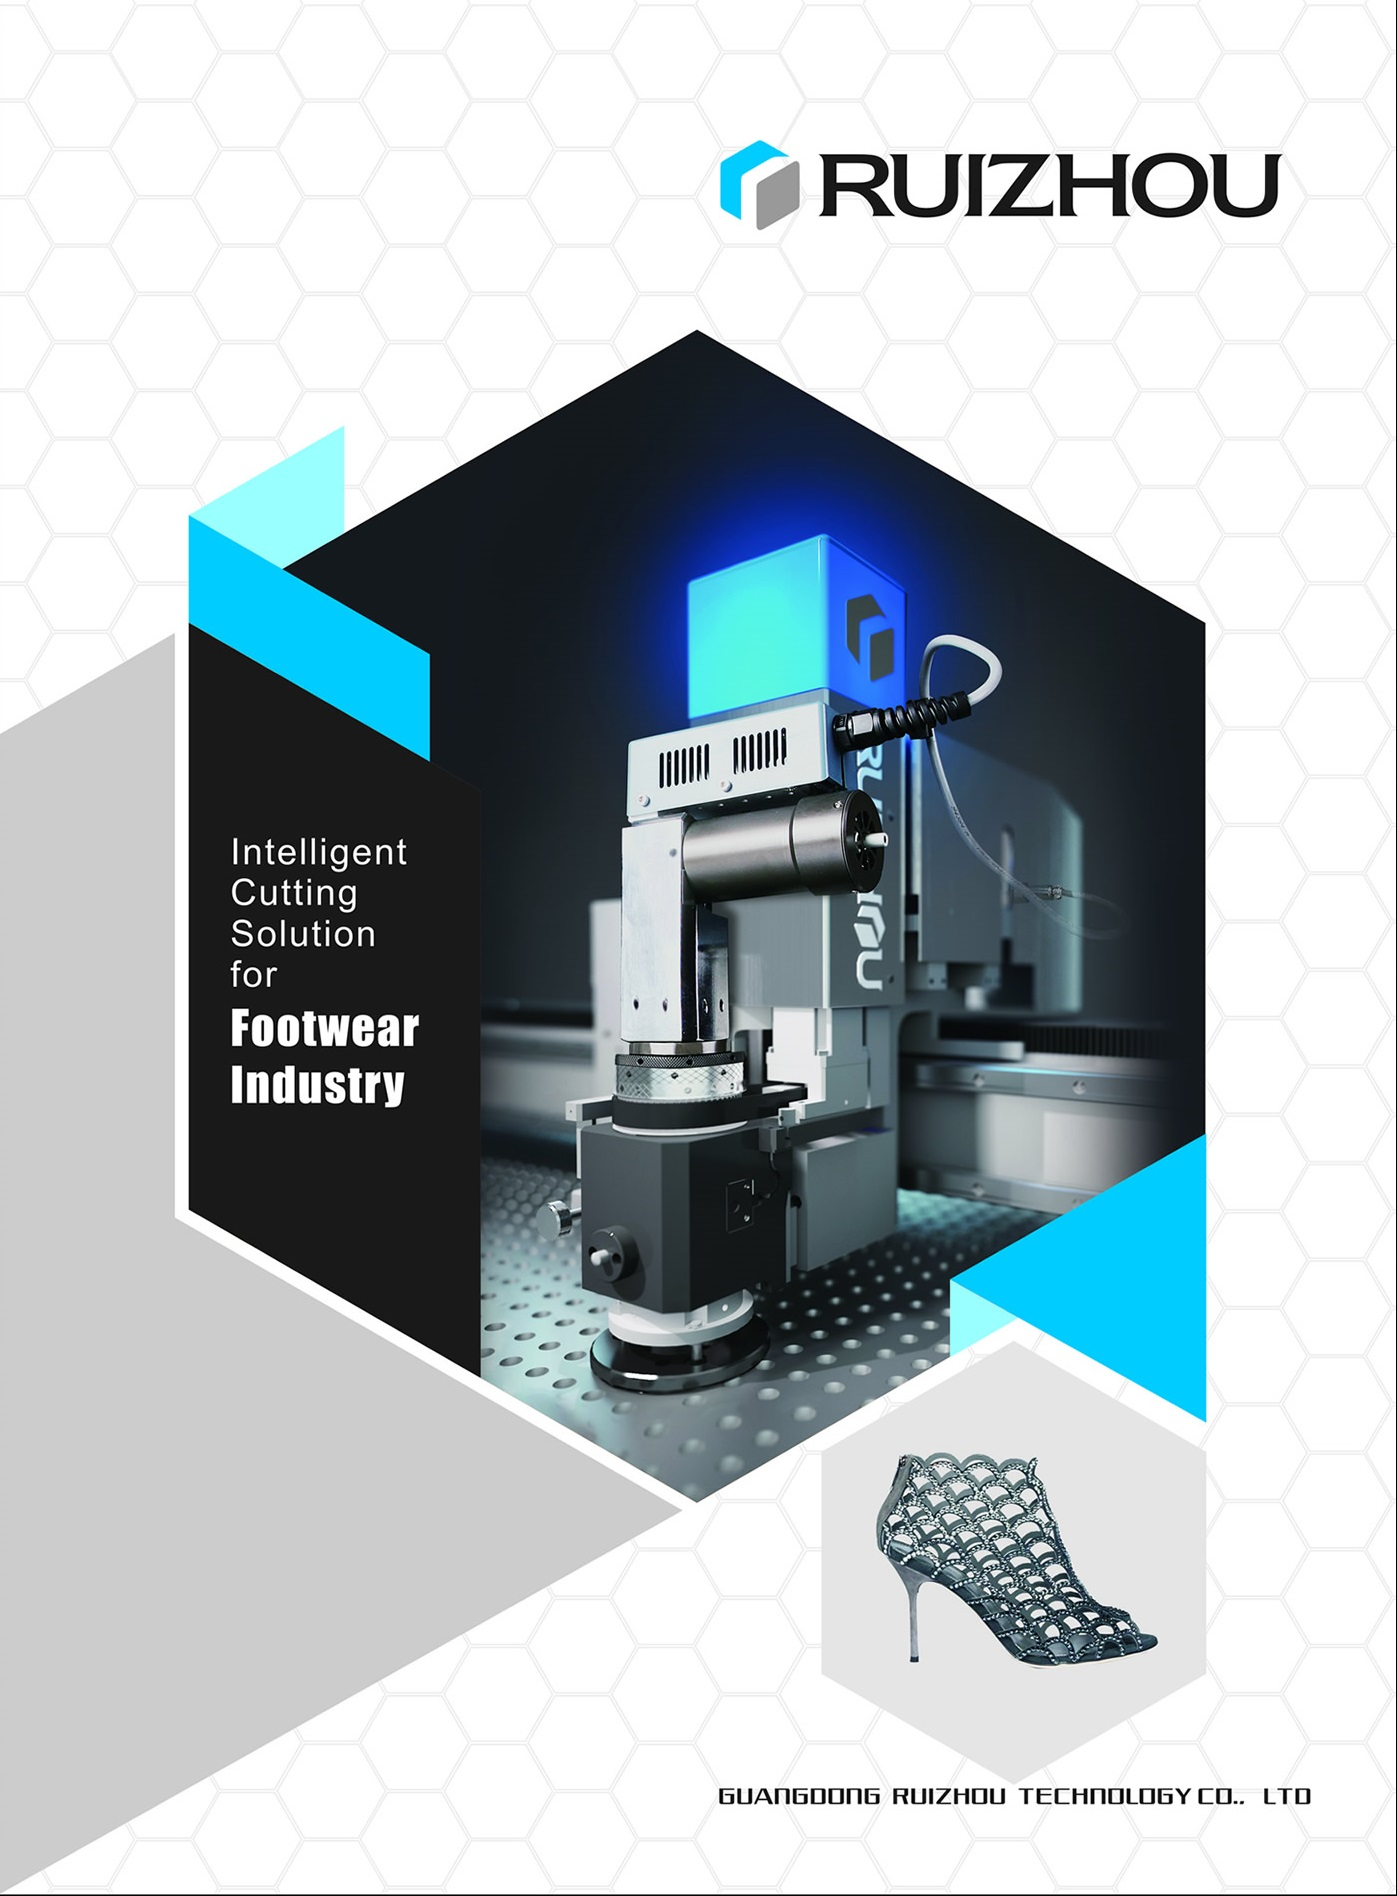 Ruizhou Intelligent Cutting Solution for Footwear Industry